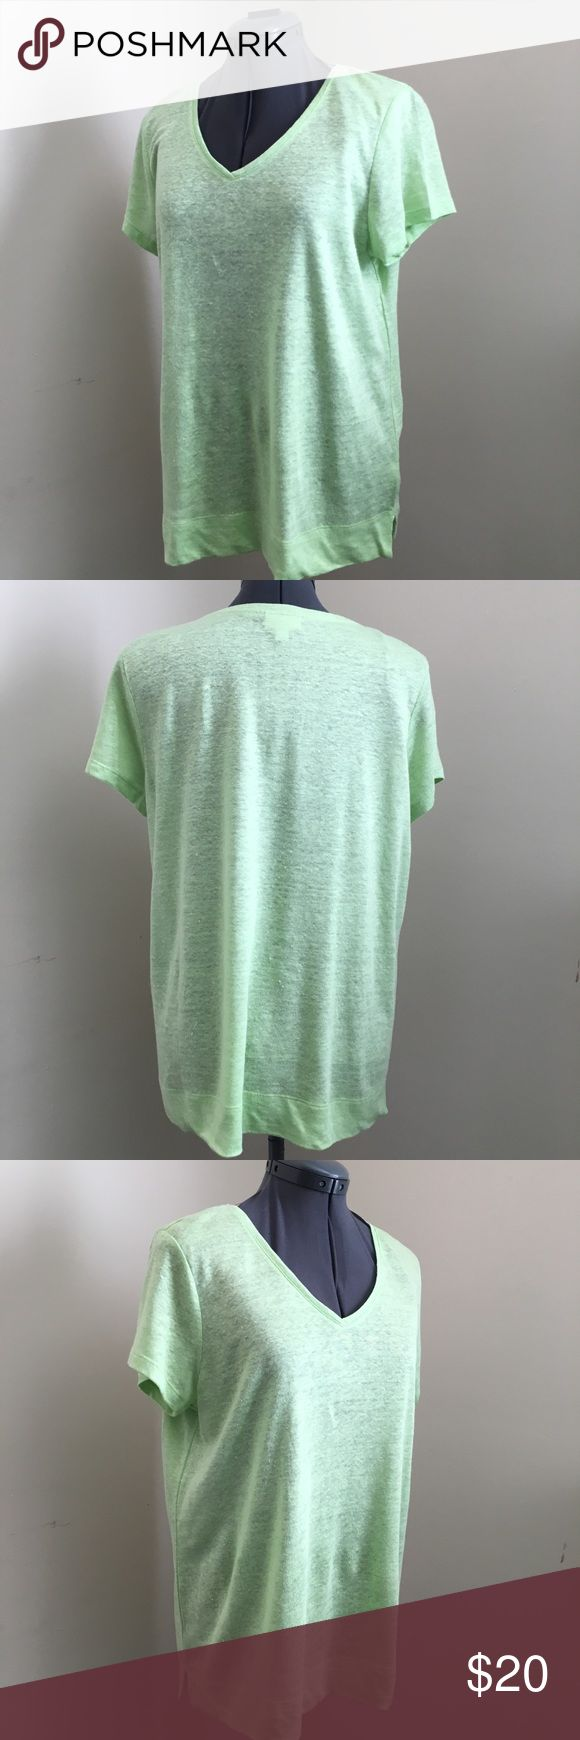 "J Jill love Linen tee J Jill 100% linen tee. Pale lime/pistachio color. EUC. Size medium measures 21.5""across chest, 26"" from shoulder seam to hem. Slightly loose, draped fit J. Jill Tops Tees - Short Sleeve"